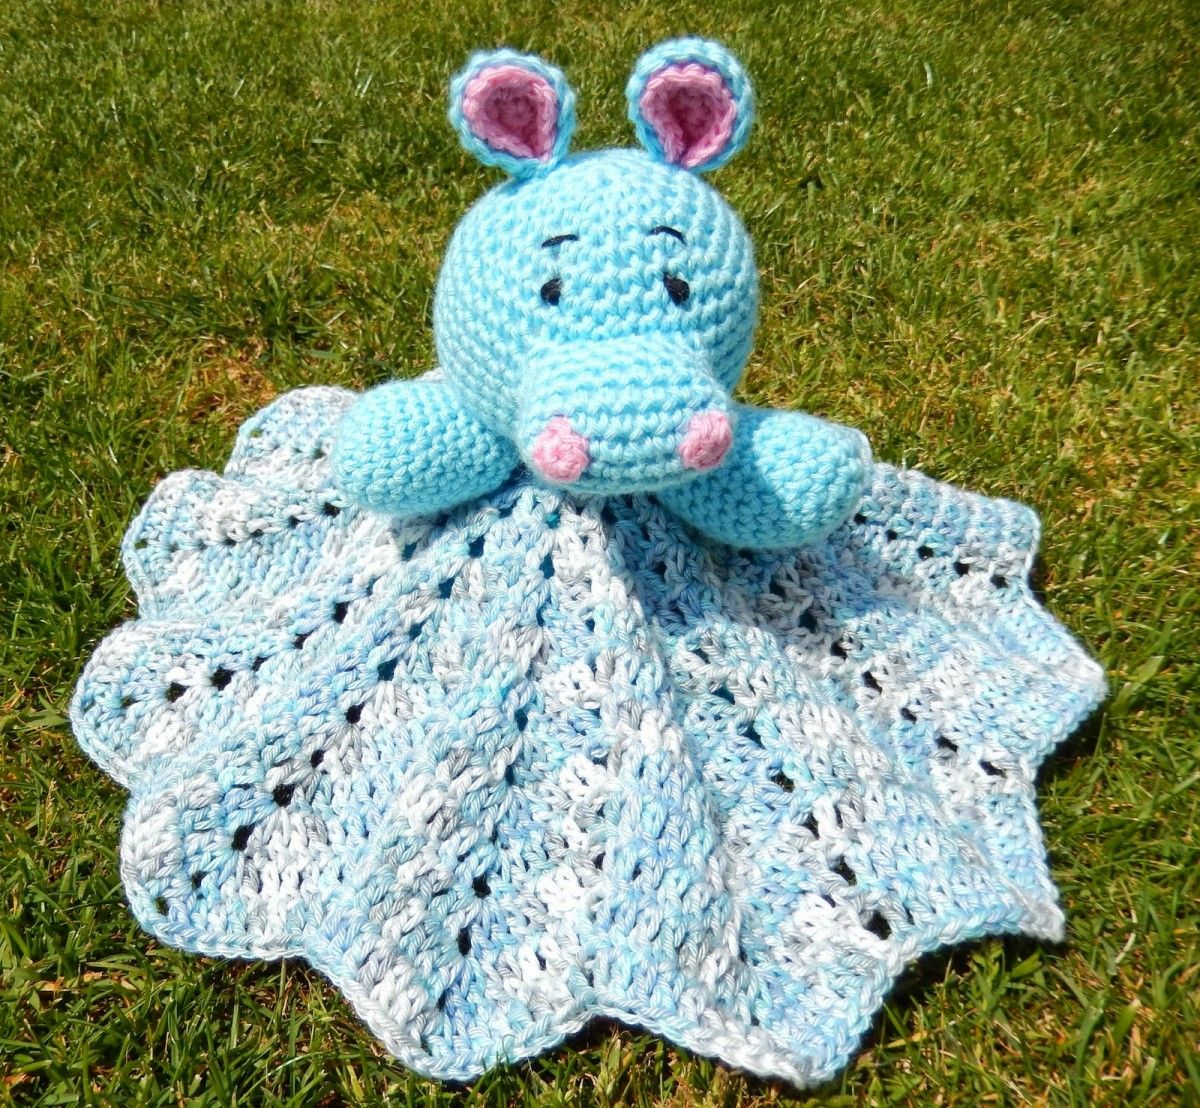 Crochet Hippo Pattern Ideas The Best Collection | Schmusetuch, Filz ...